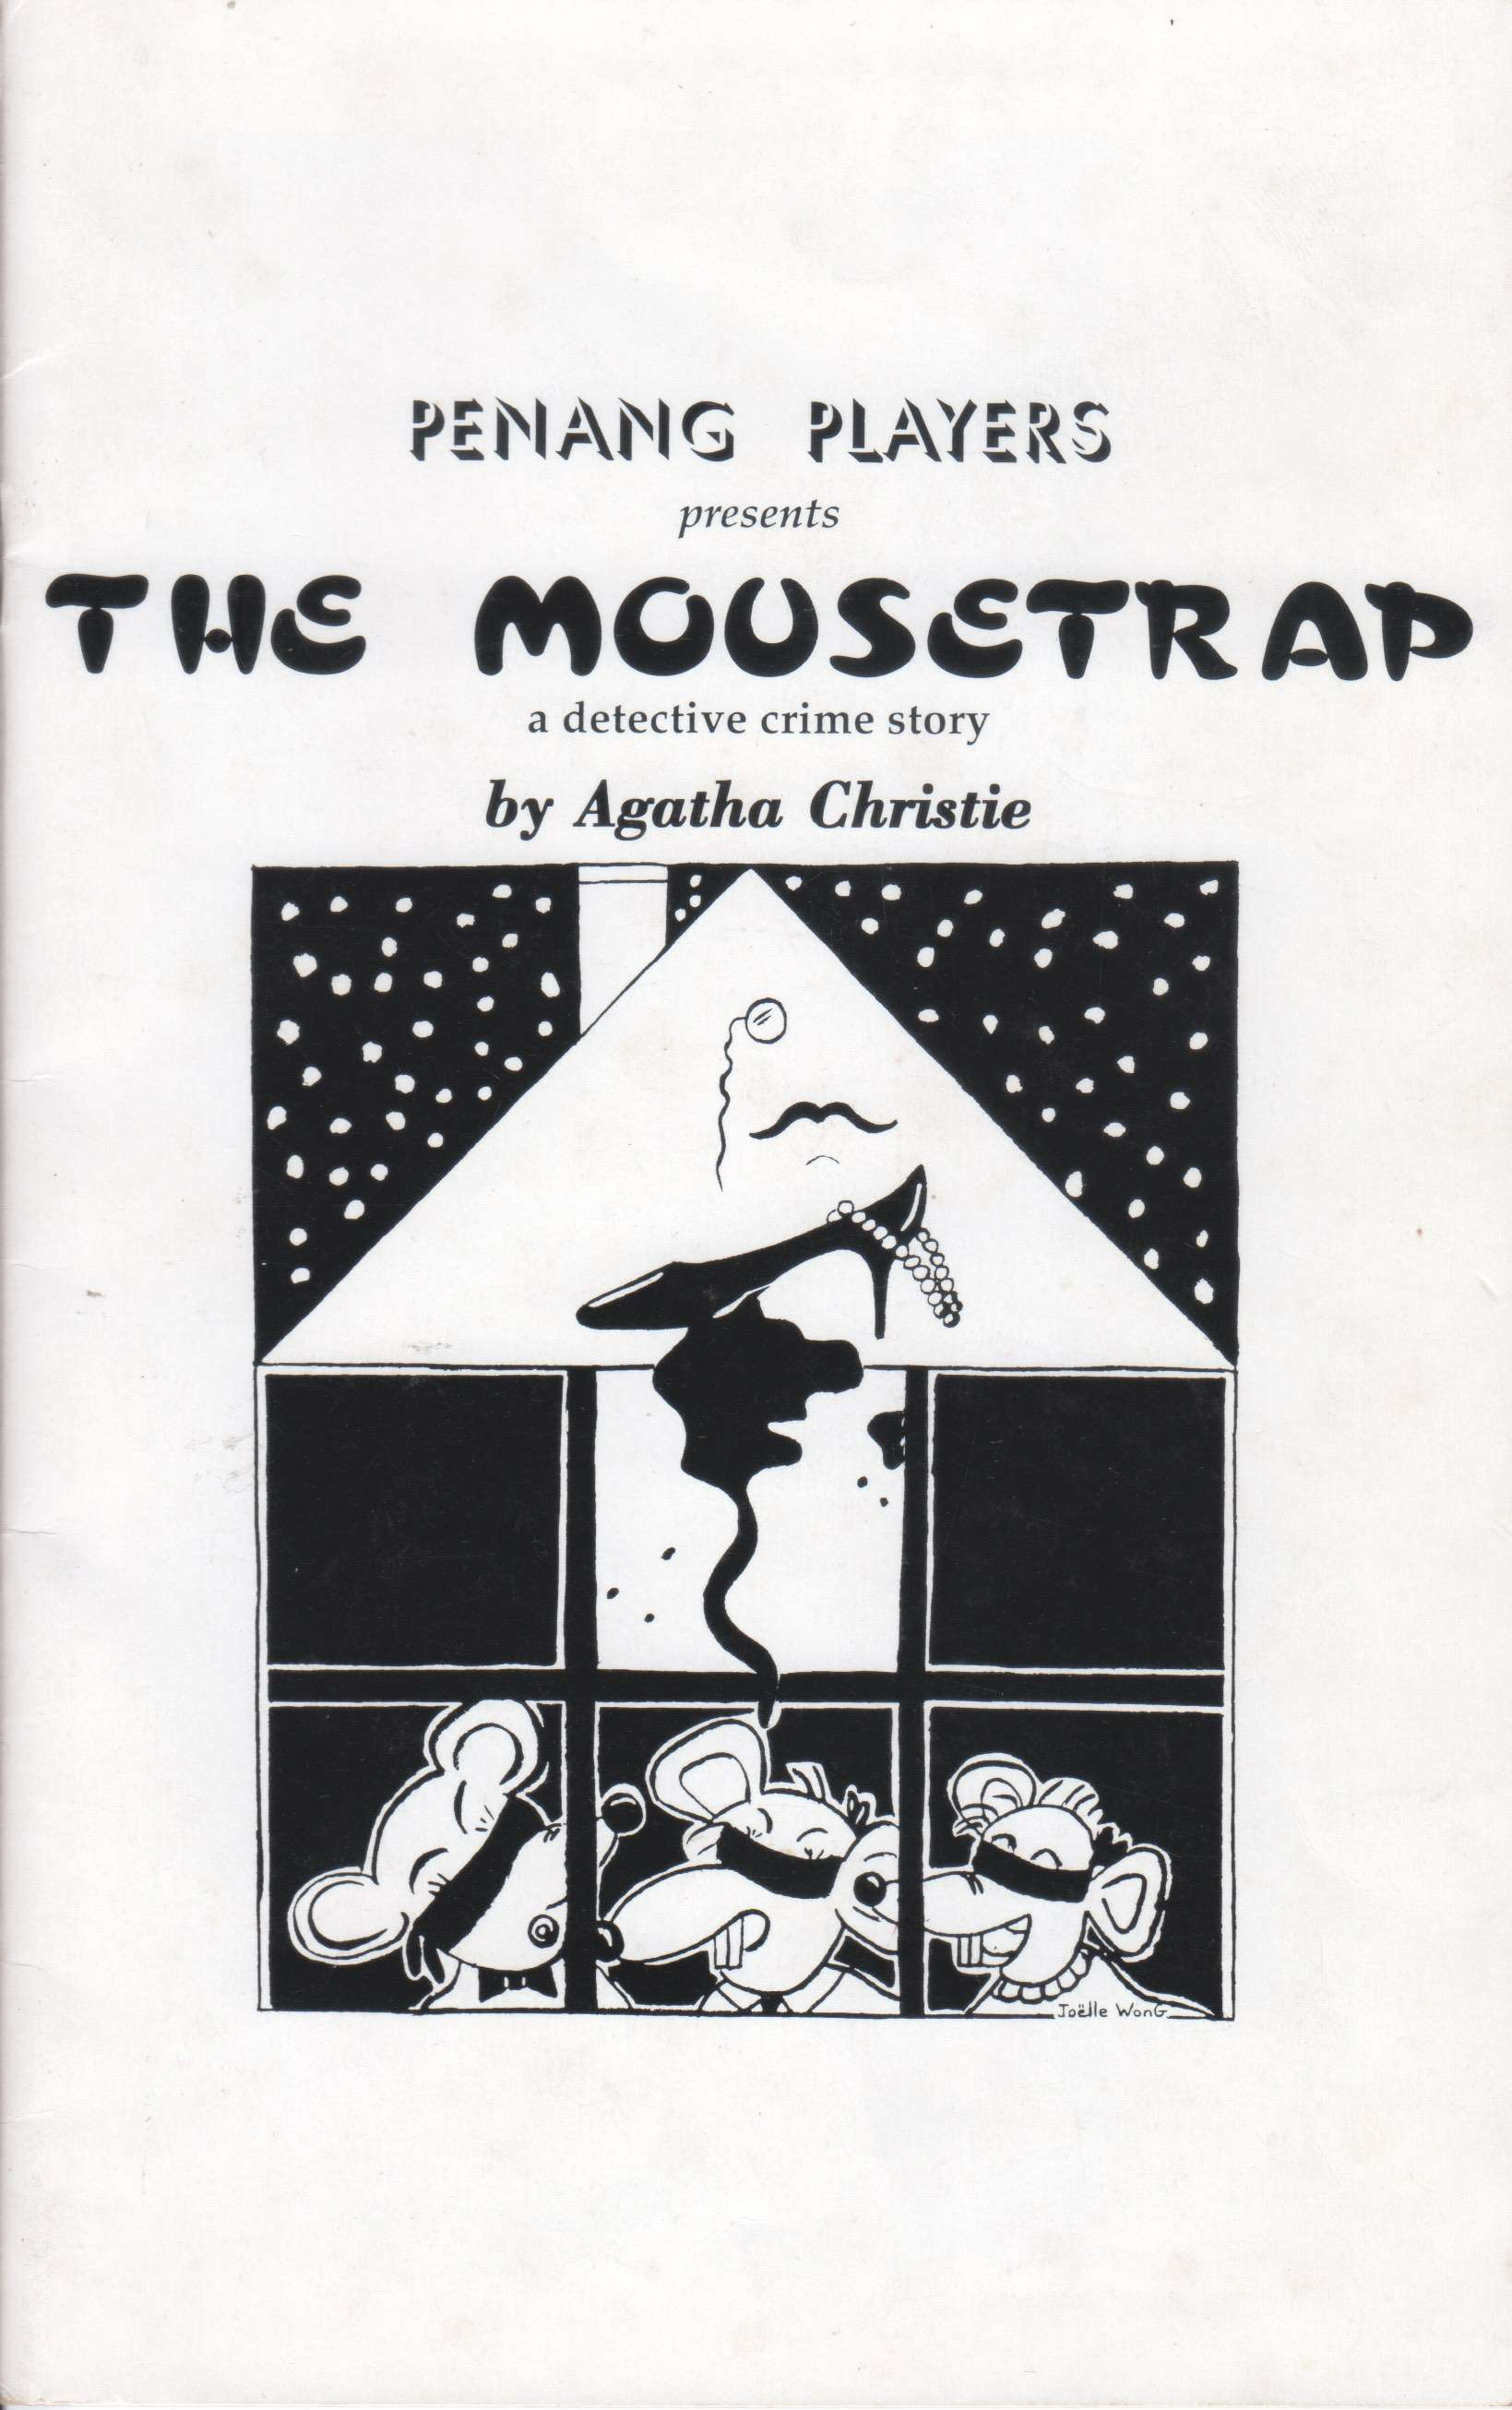 The Mousetrap Programme